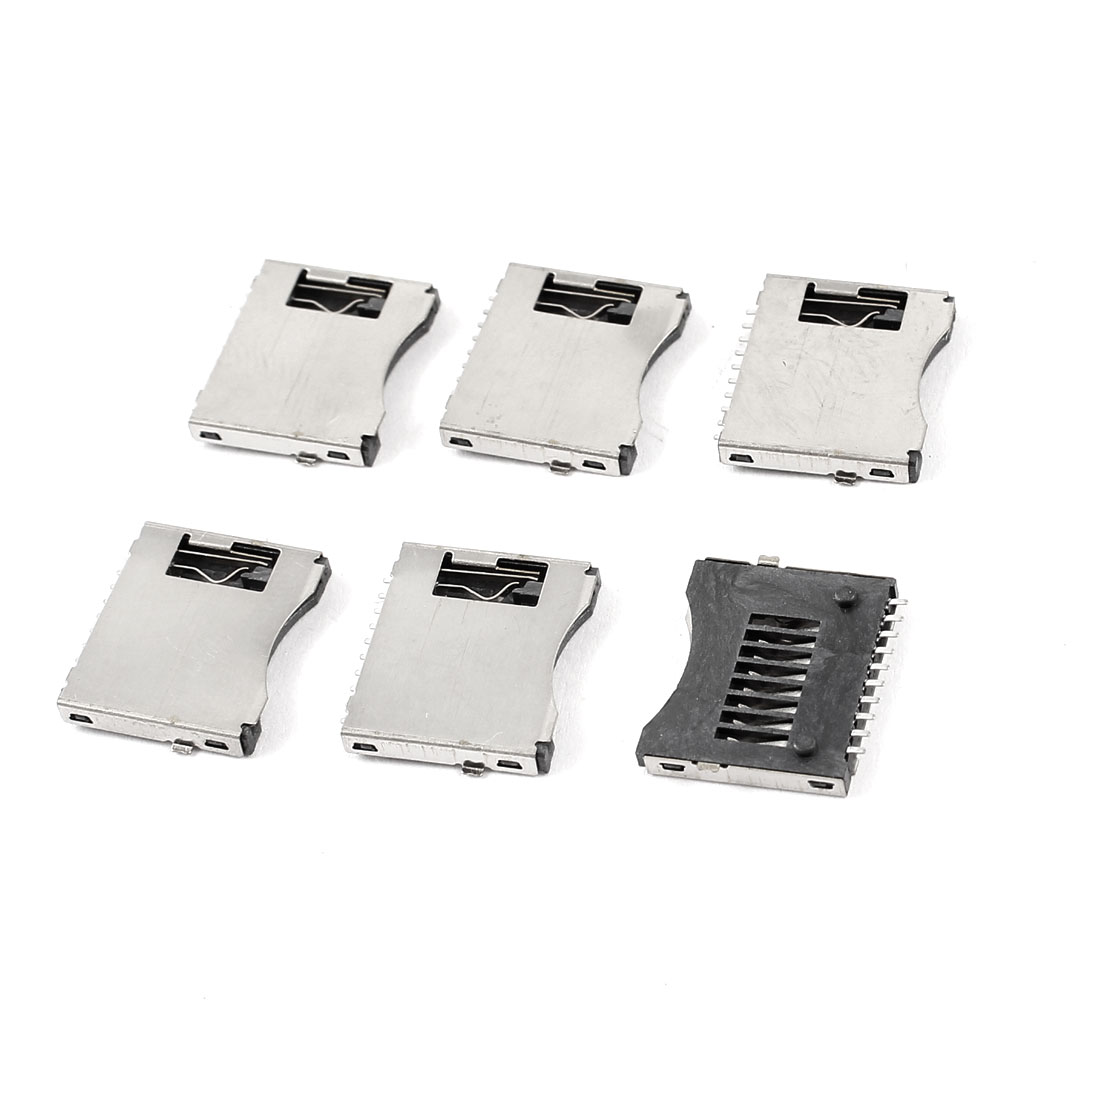 6 Pcs SMT SMD PCB Mount Cell Phone TF Micro SD Memory Card Slot Holder Sockets